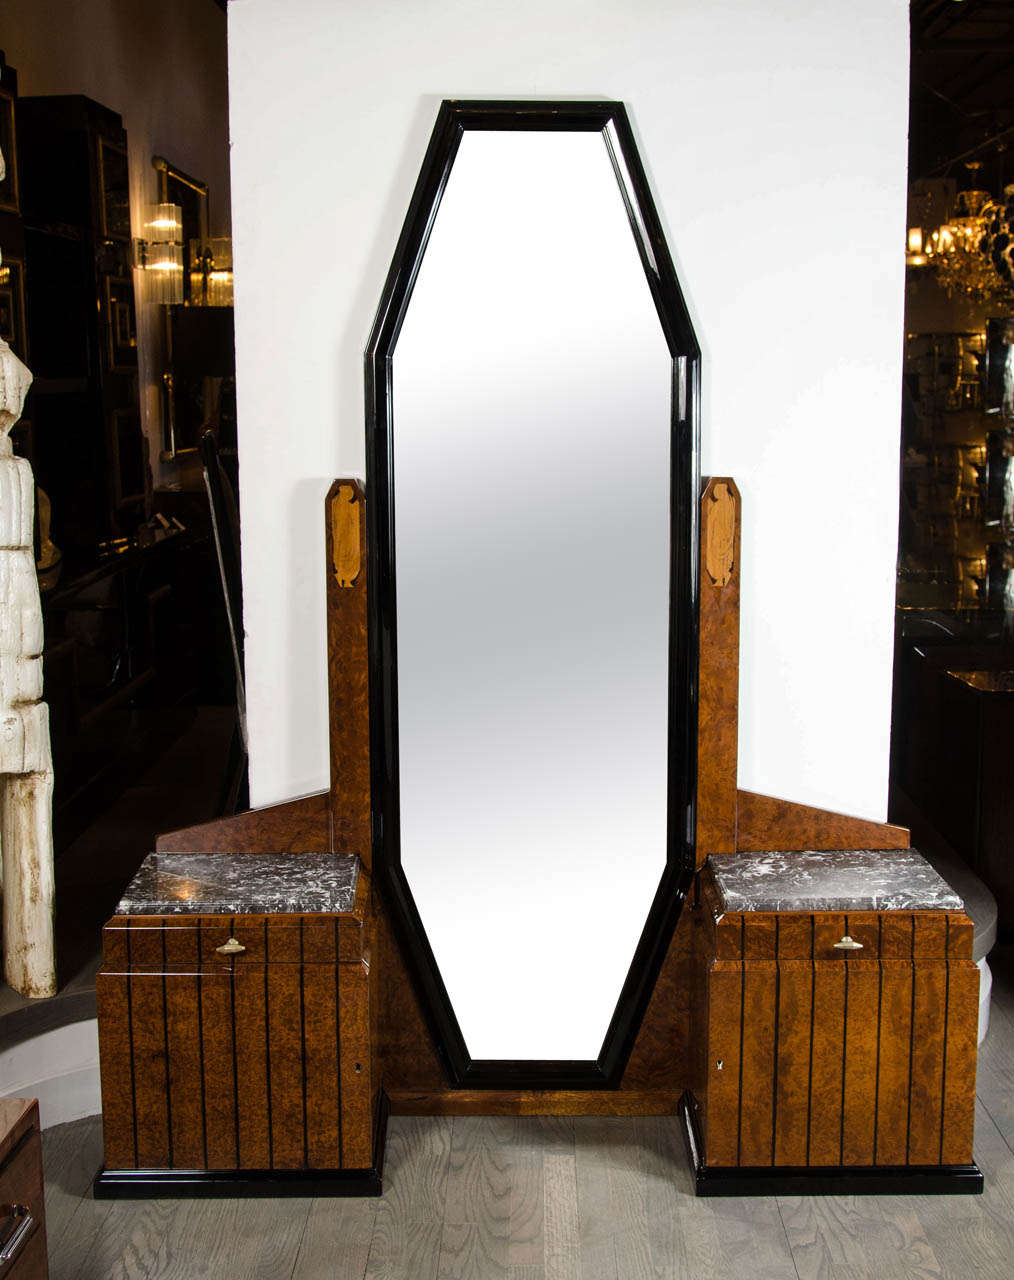 This elegant Art Deco floor-standing vanity or dressing mirror in book-matched burled elm features strong skyscraper Art Deco cubist geometric details, a full length octagonal mirror flanked by two exotic marble-top cabinets, each fitted with a